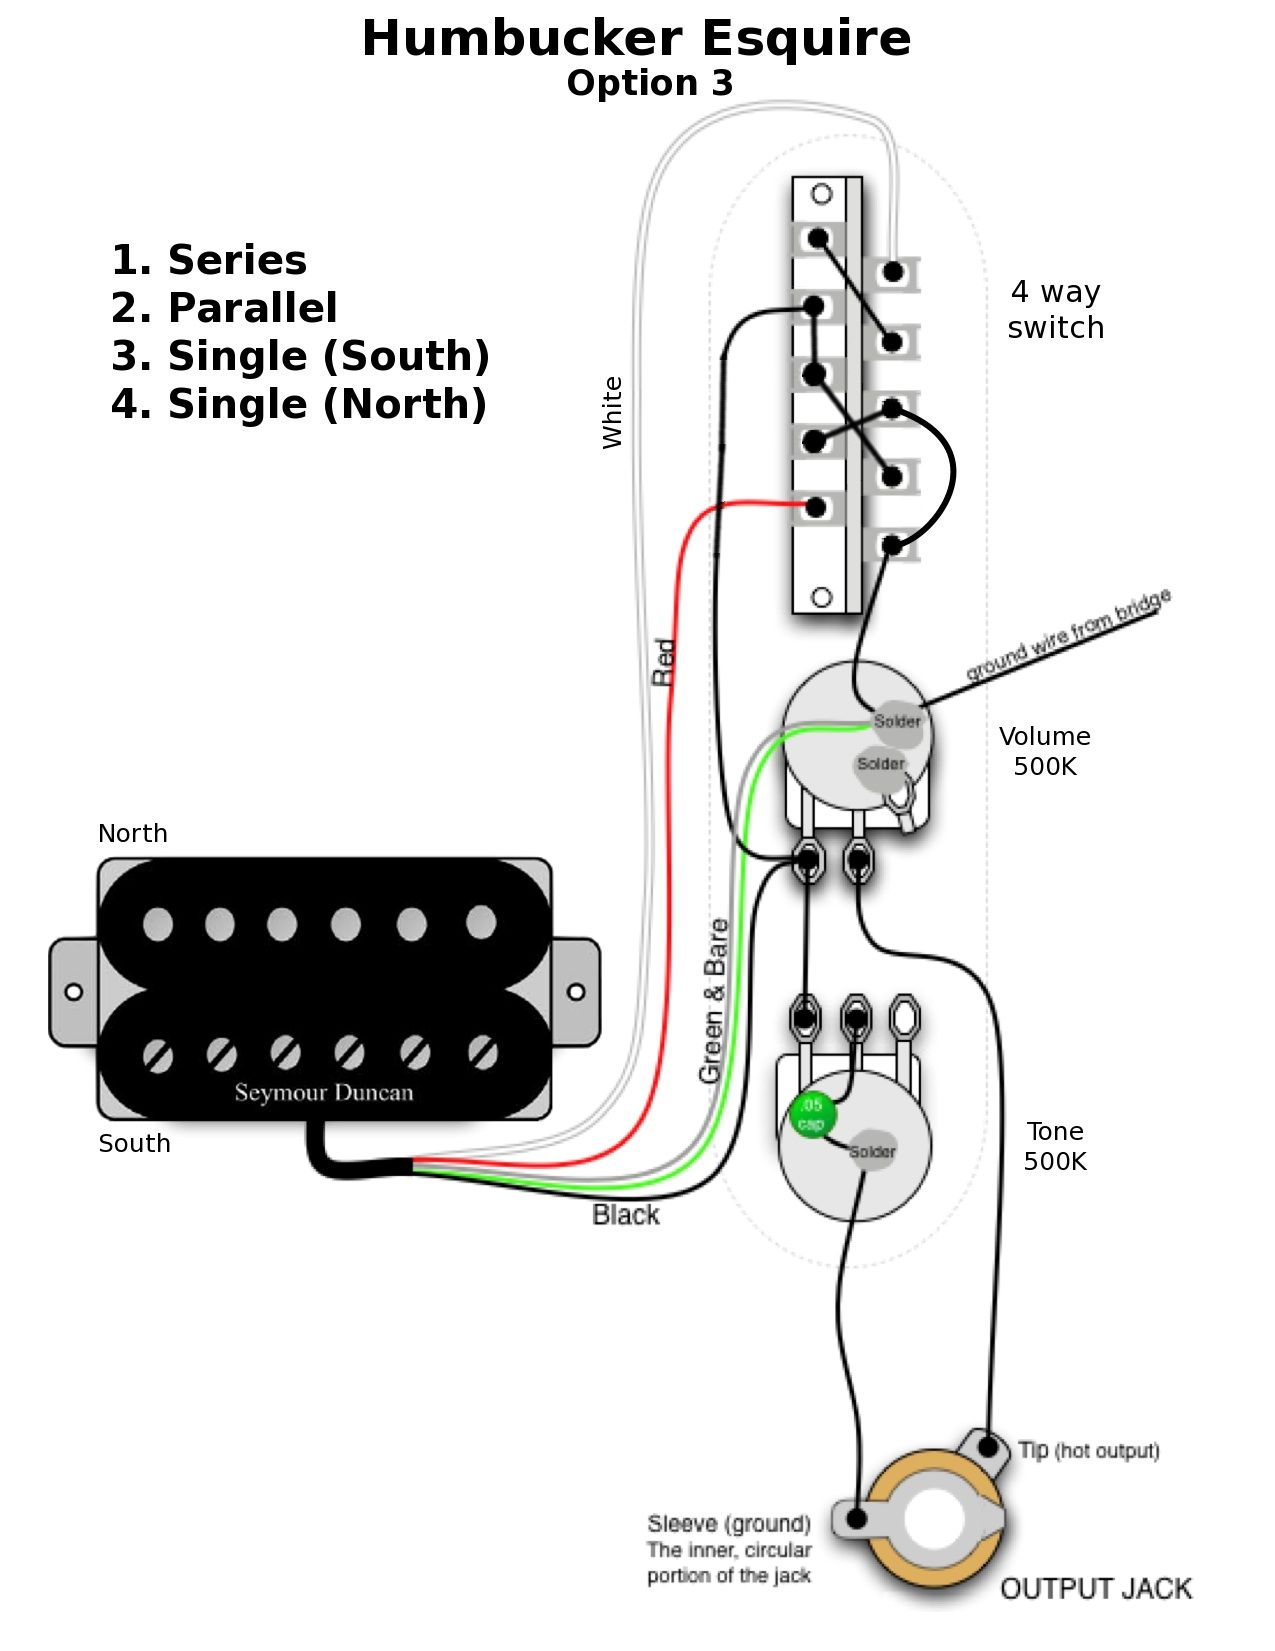 z243s esquire_hb_option_3 guitar wiring diagrams 1 hum 2 single guitar discover your fender esquire wiring diagram at fashall.co